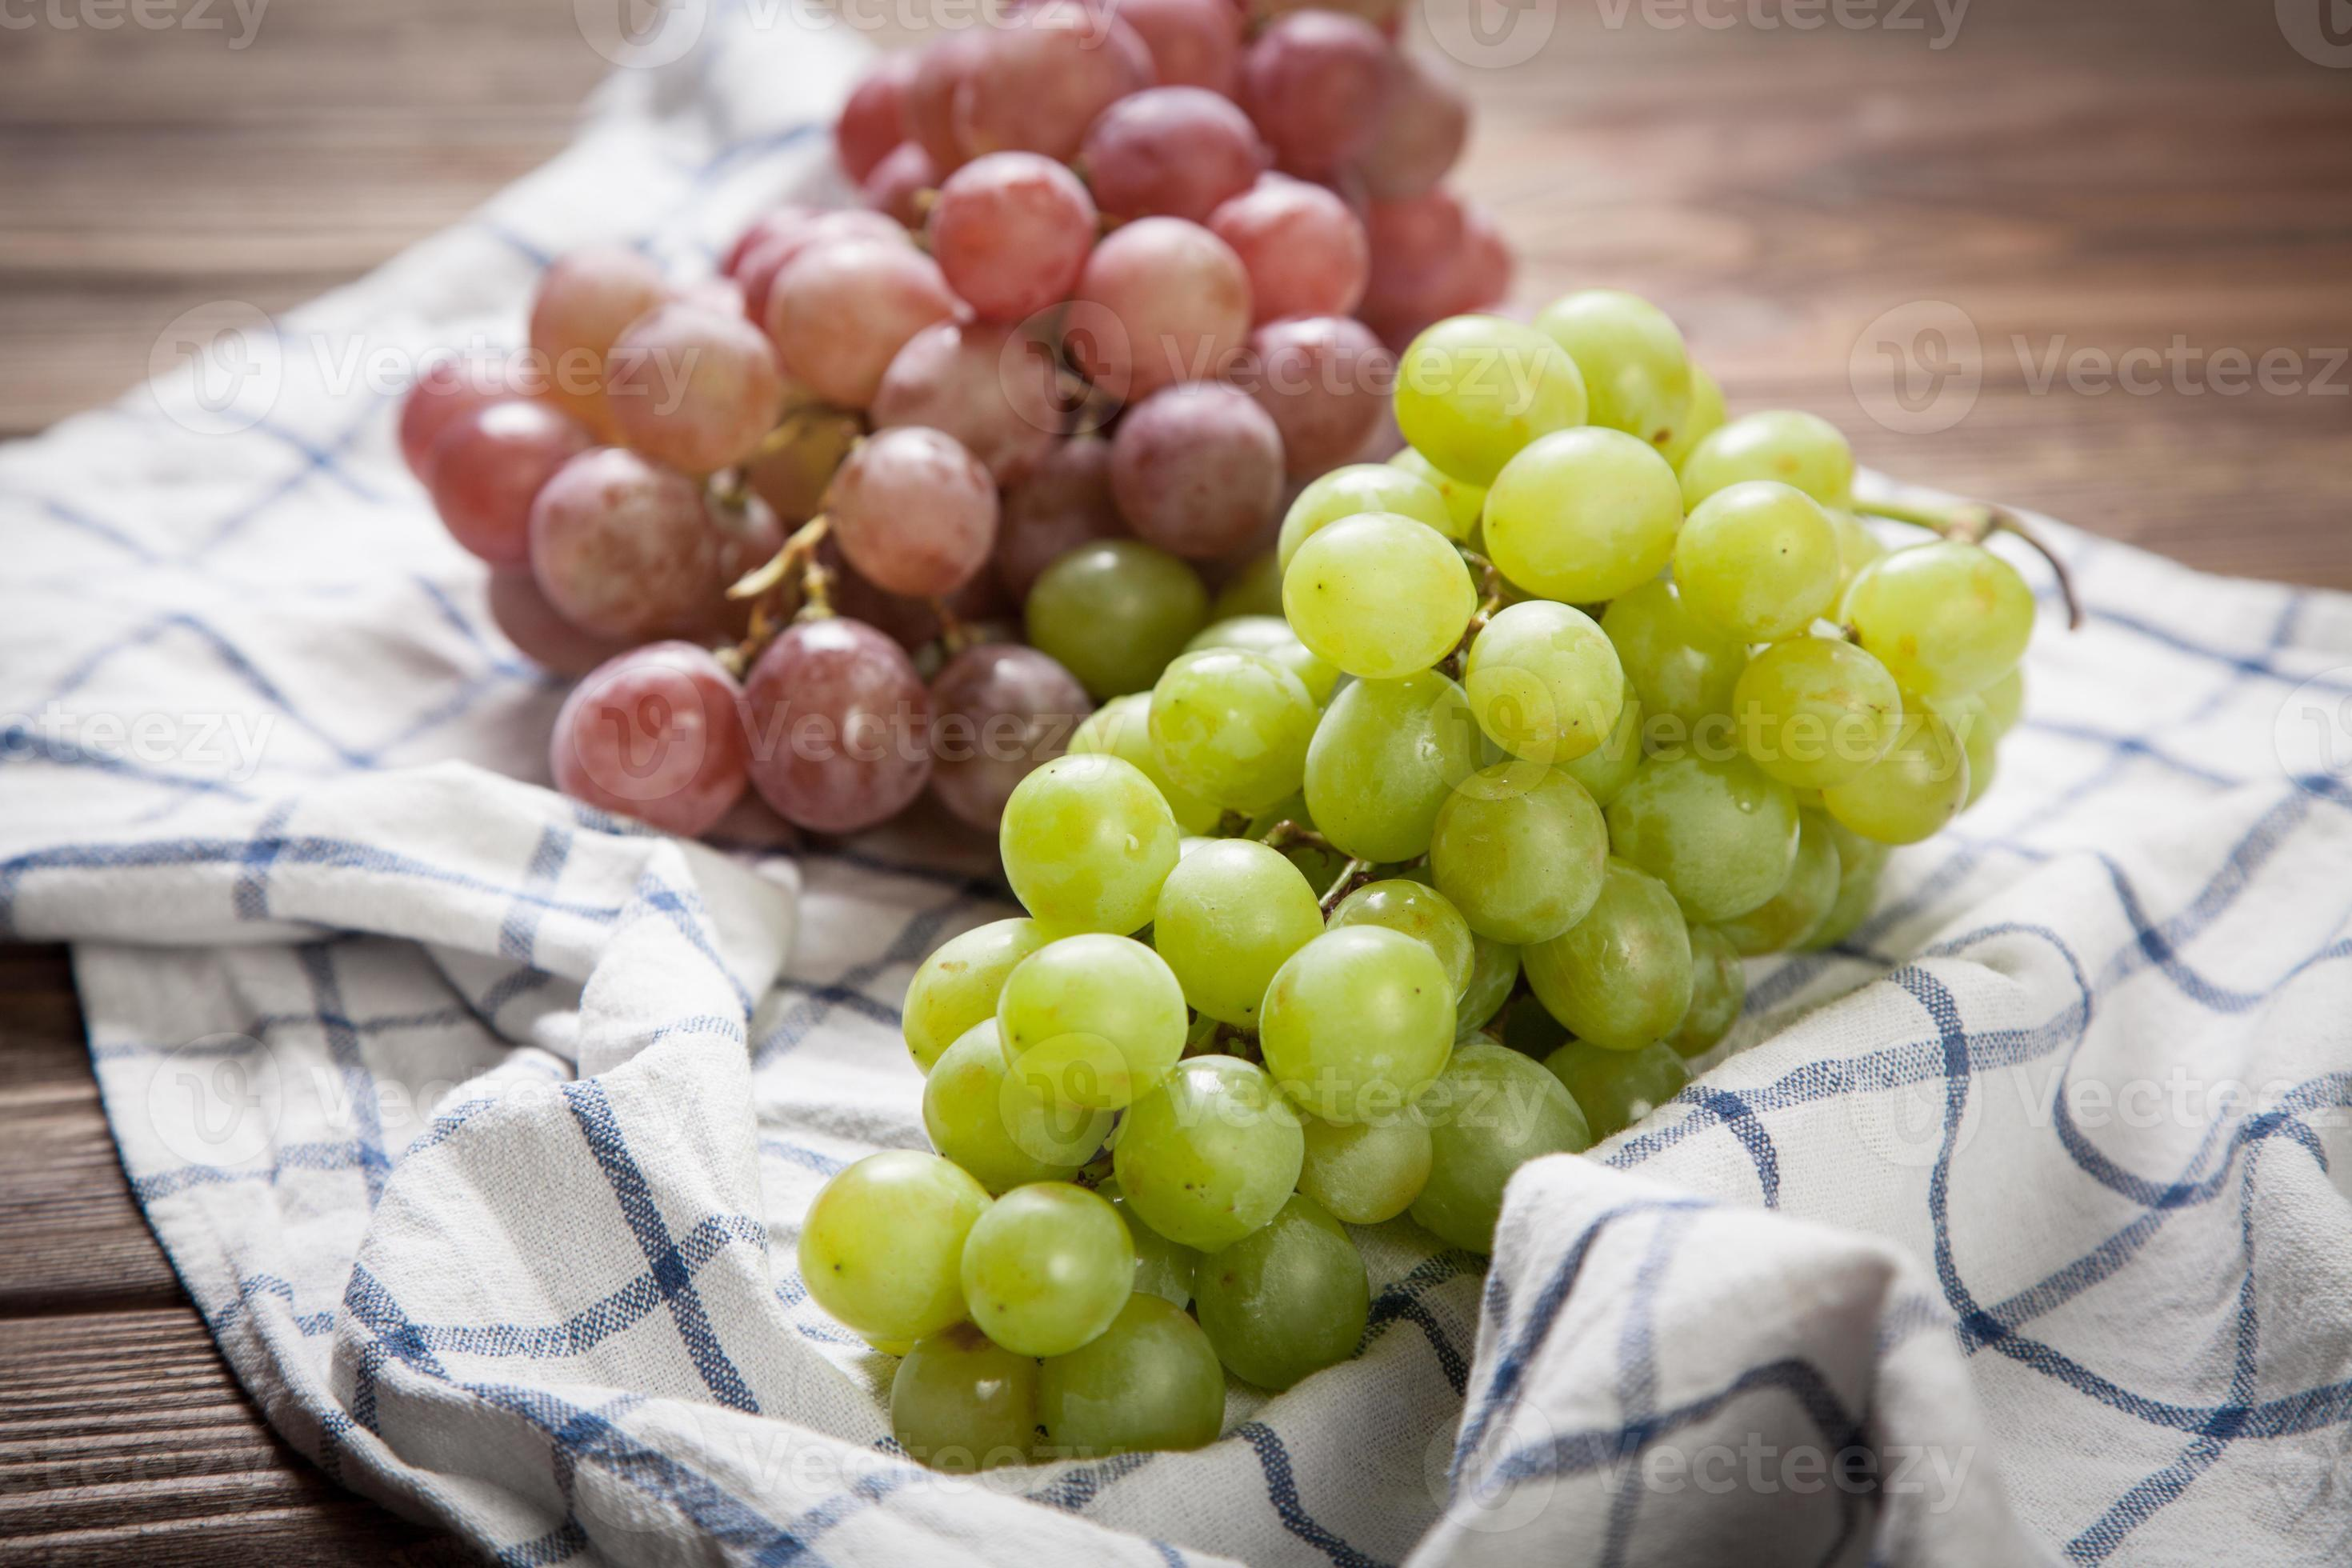 Delicious Grapes On A Kitchen Table 1344618 Stock Photo At Vecteezy